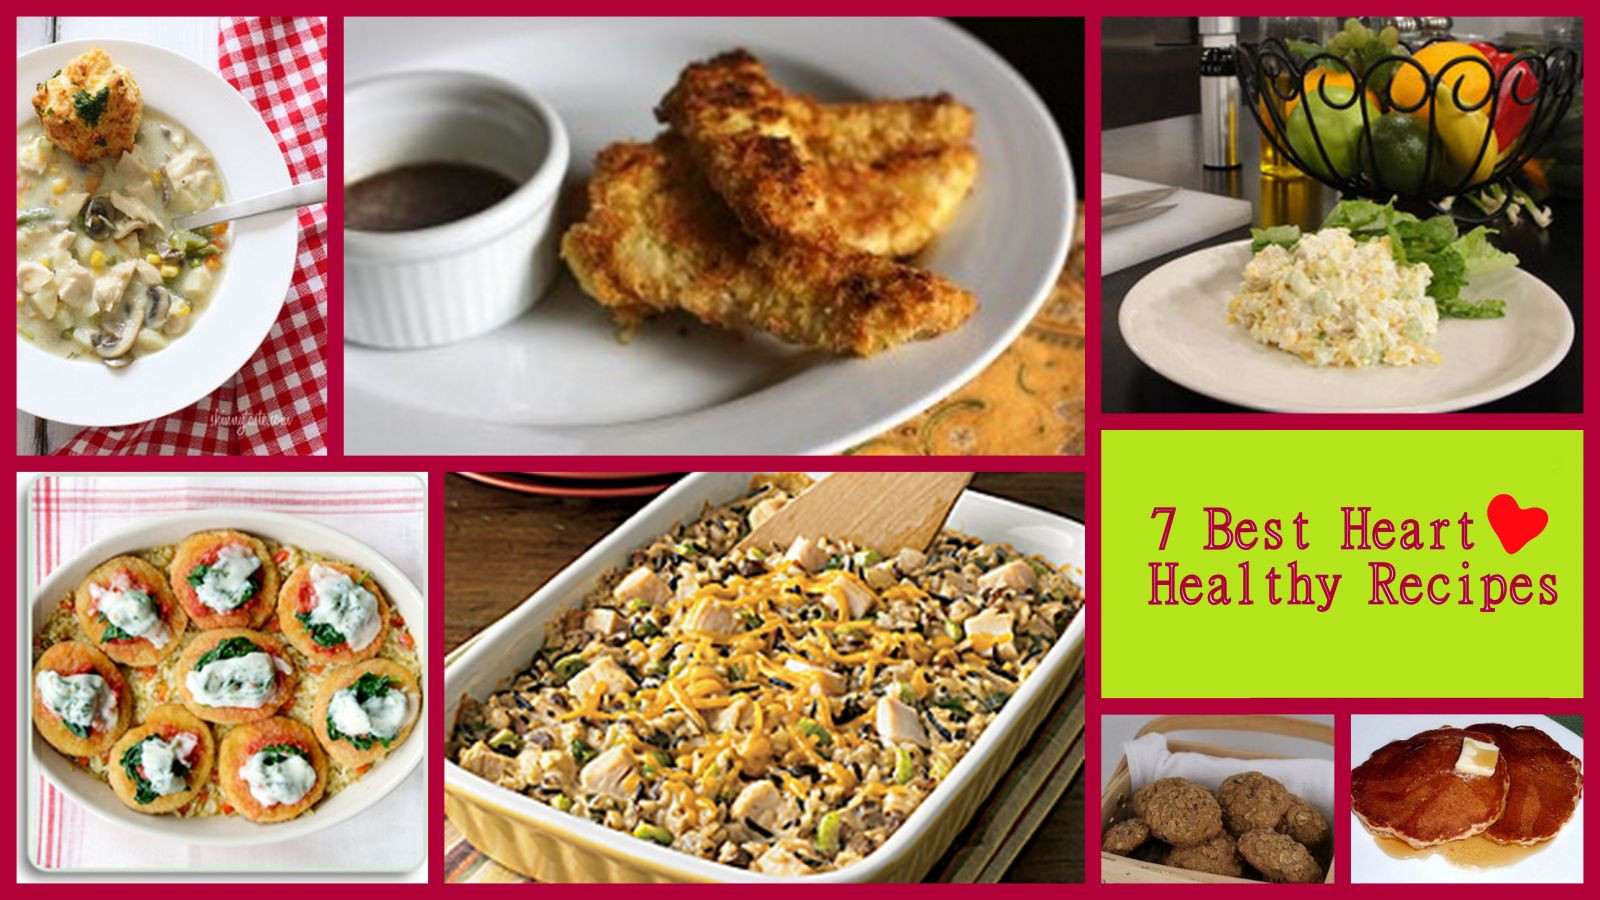 Heart Healthy Diet Recipes  7 Best Heart Healthy Recipes